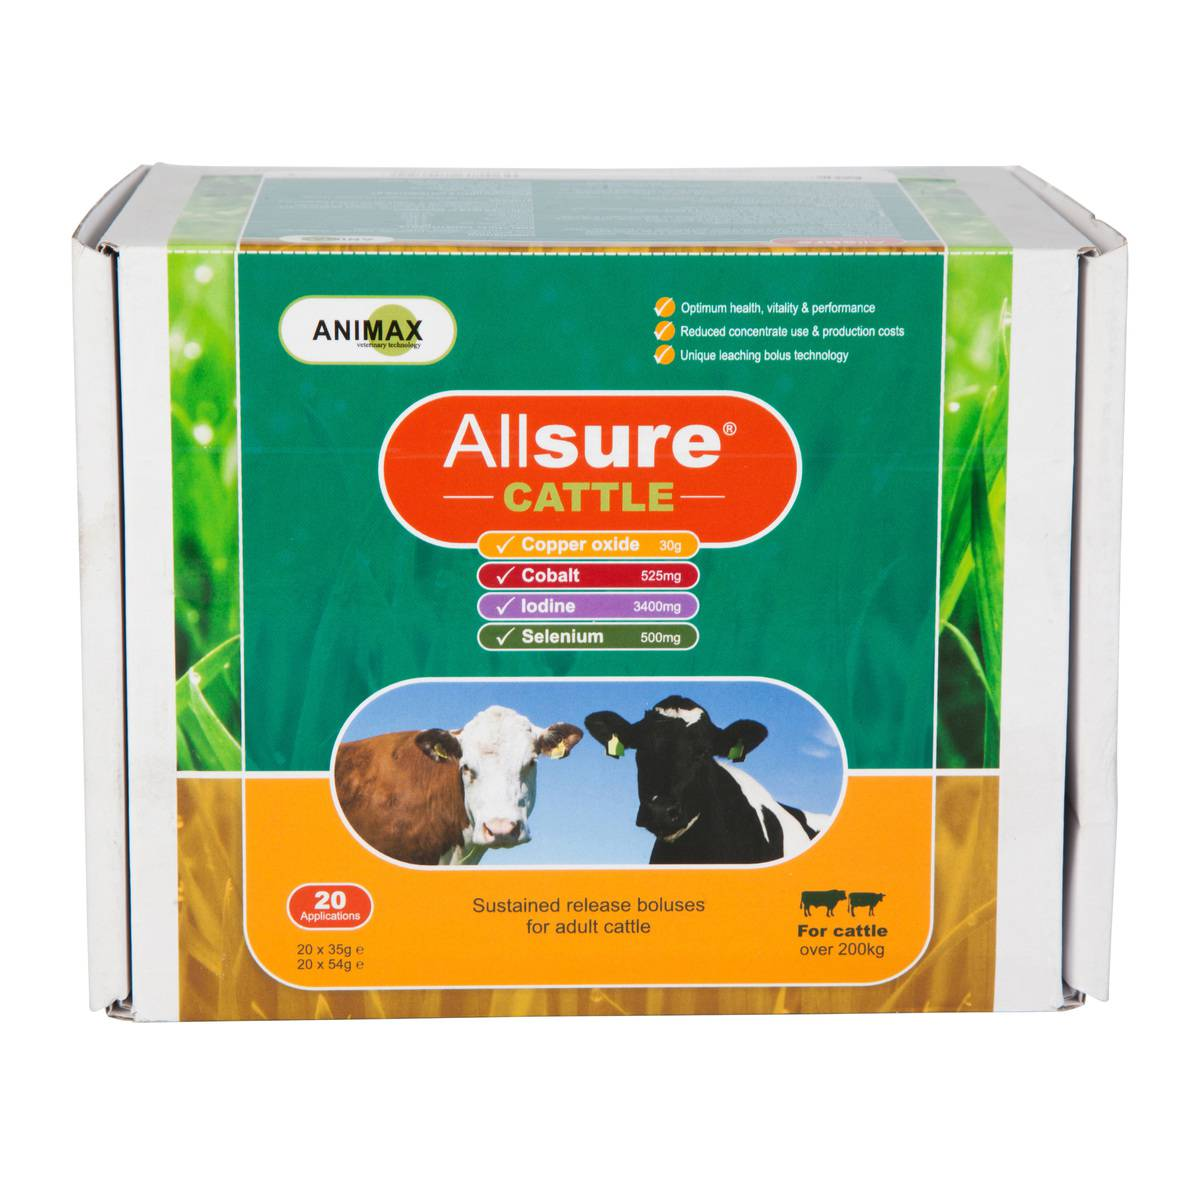 Animax Allsure Cattle 20's